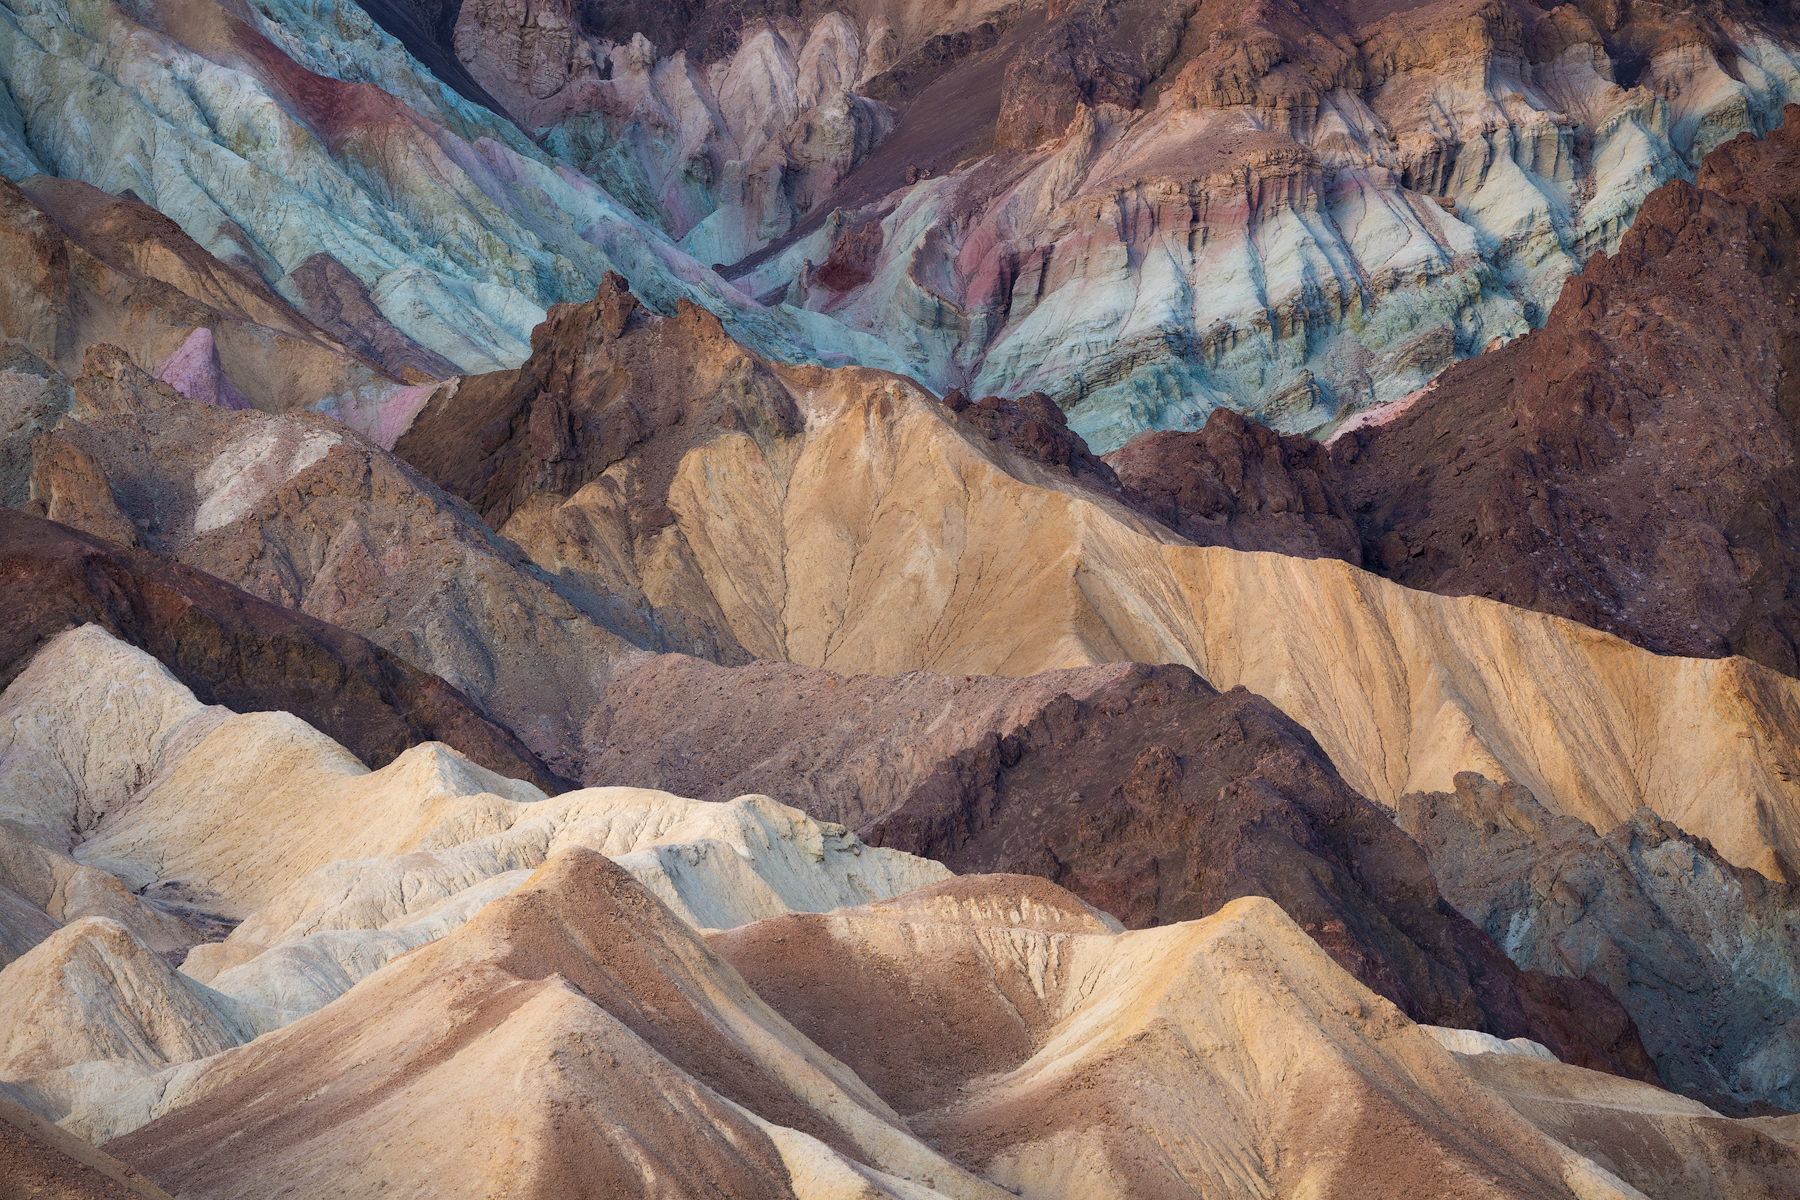 Colorful badlands, Death Valley National Park. For this spot, we saved the parking area in our car GPS and then specific vantage points that require hiking to access in our Gaia app. This makes navigating to the right spot at sunrise quite easy.